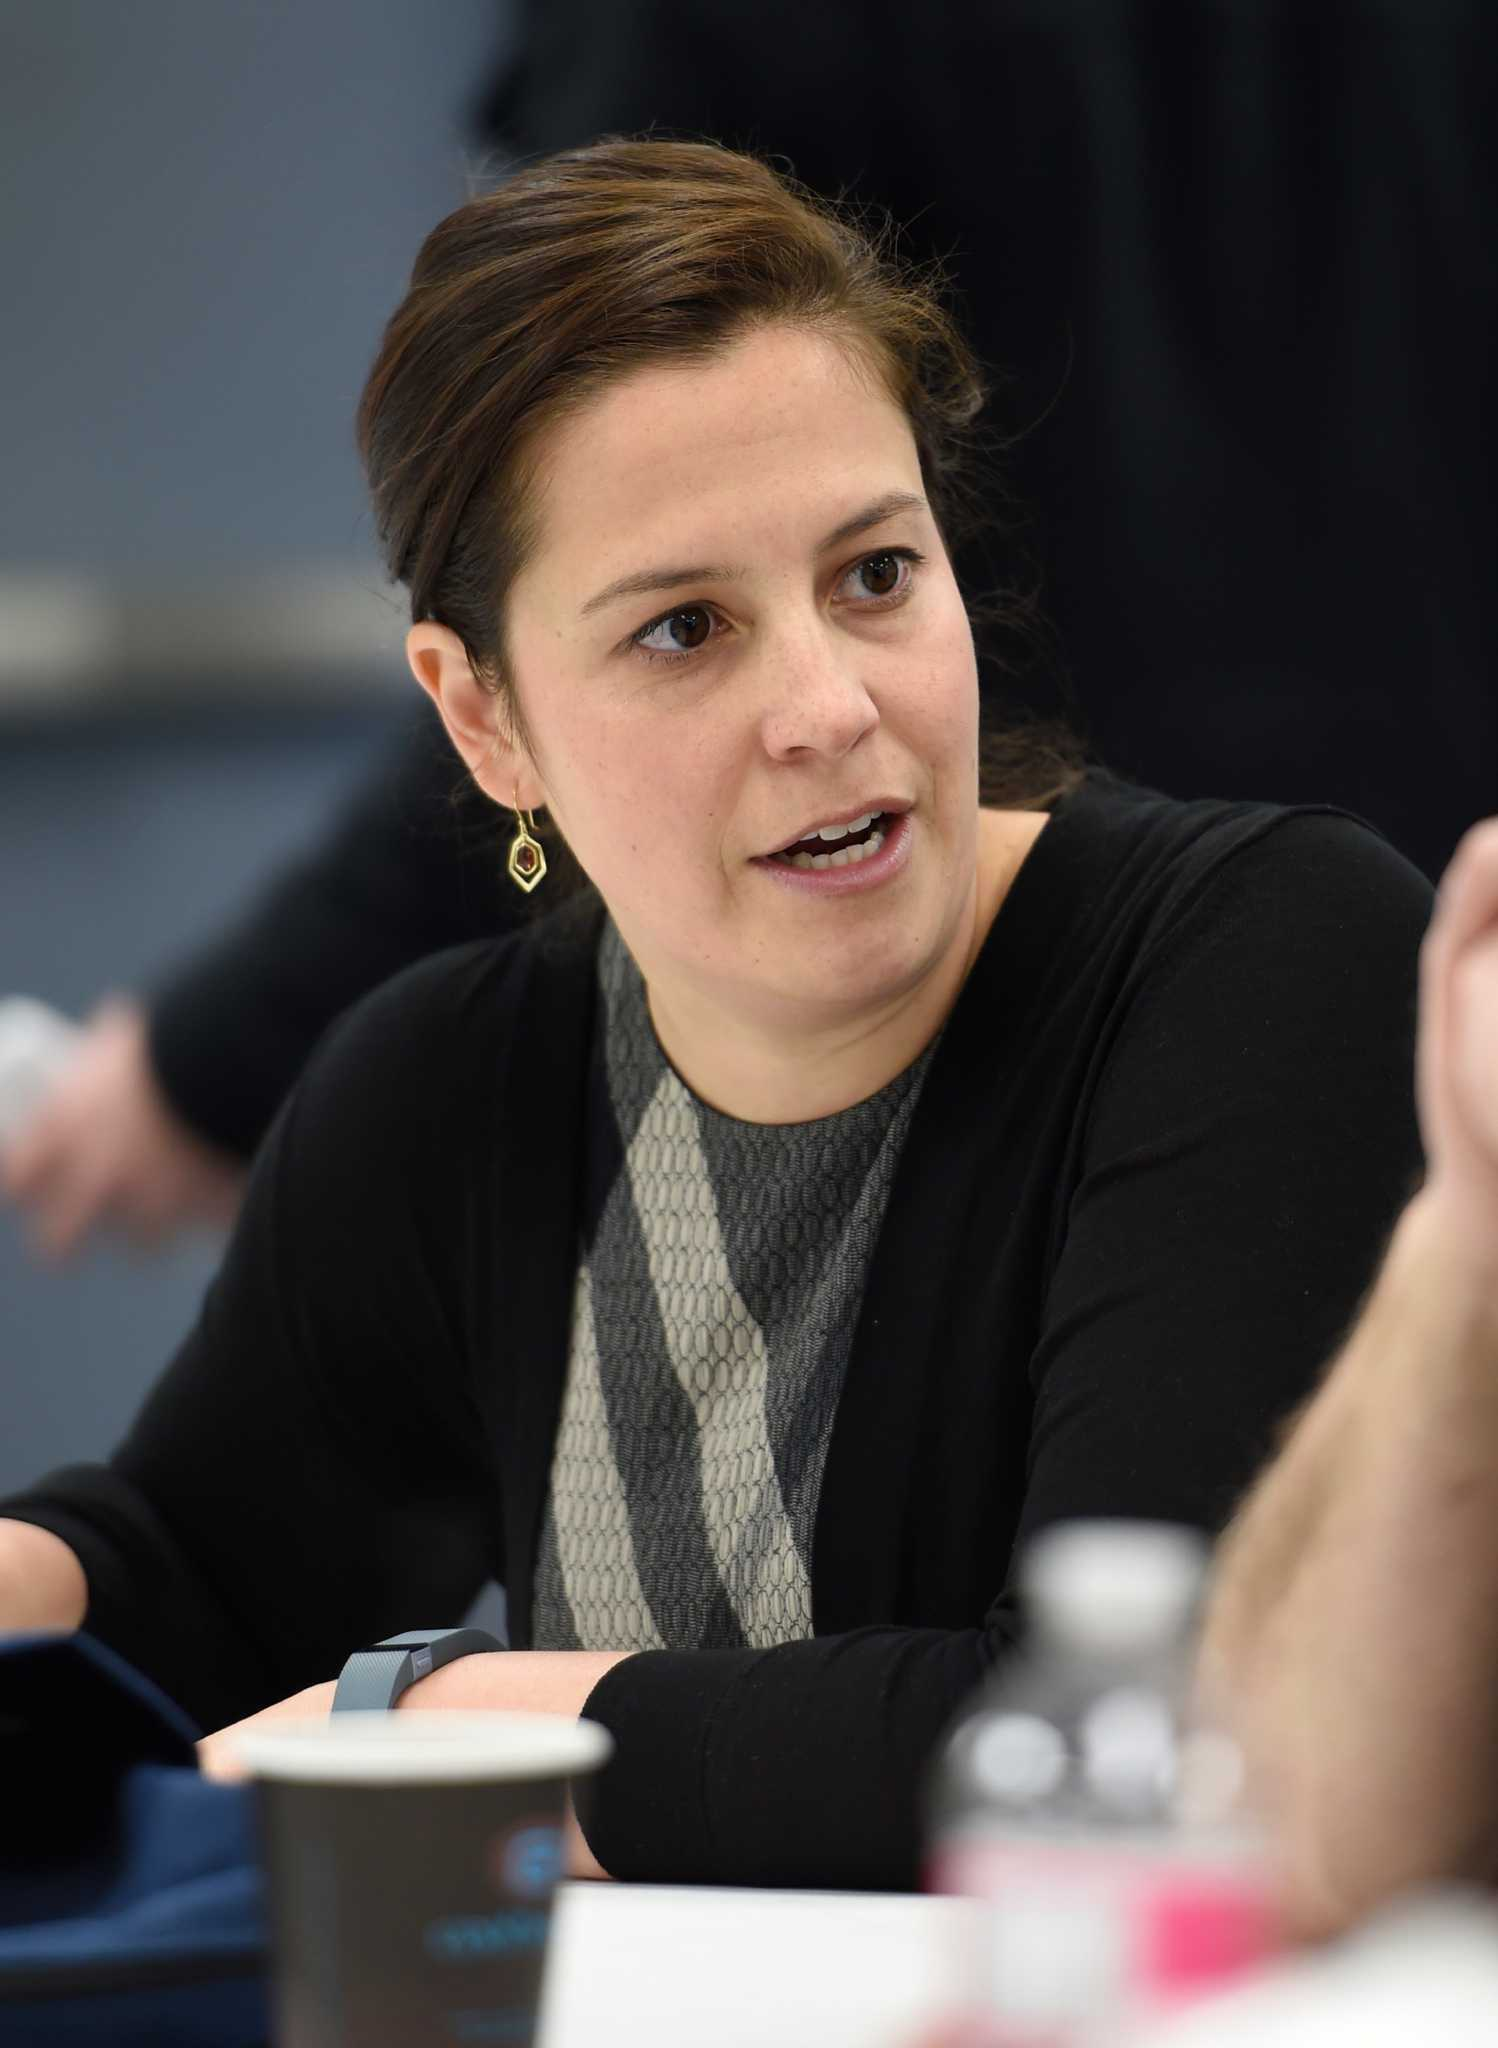 Stefanik stands up for Fort Drum renewables plant - Times Union